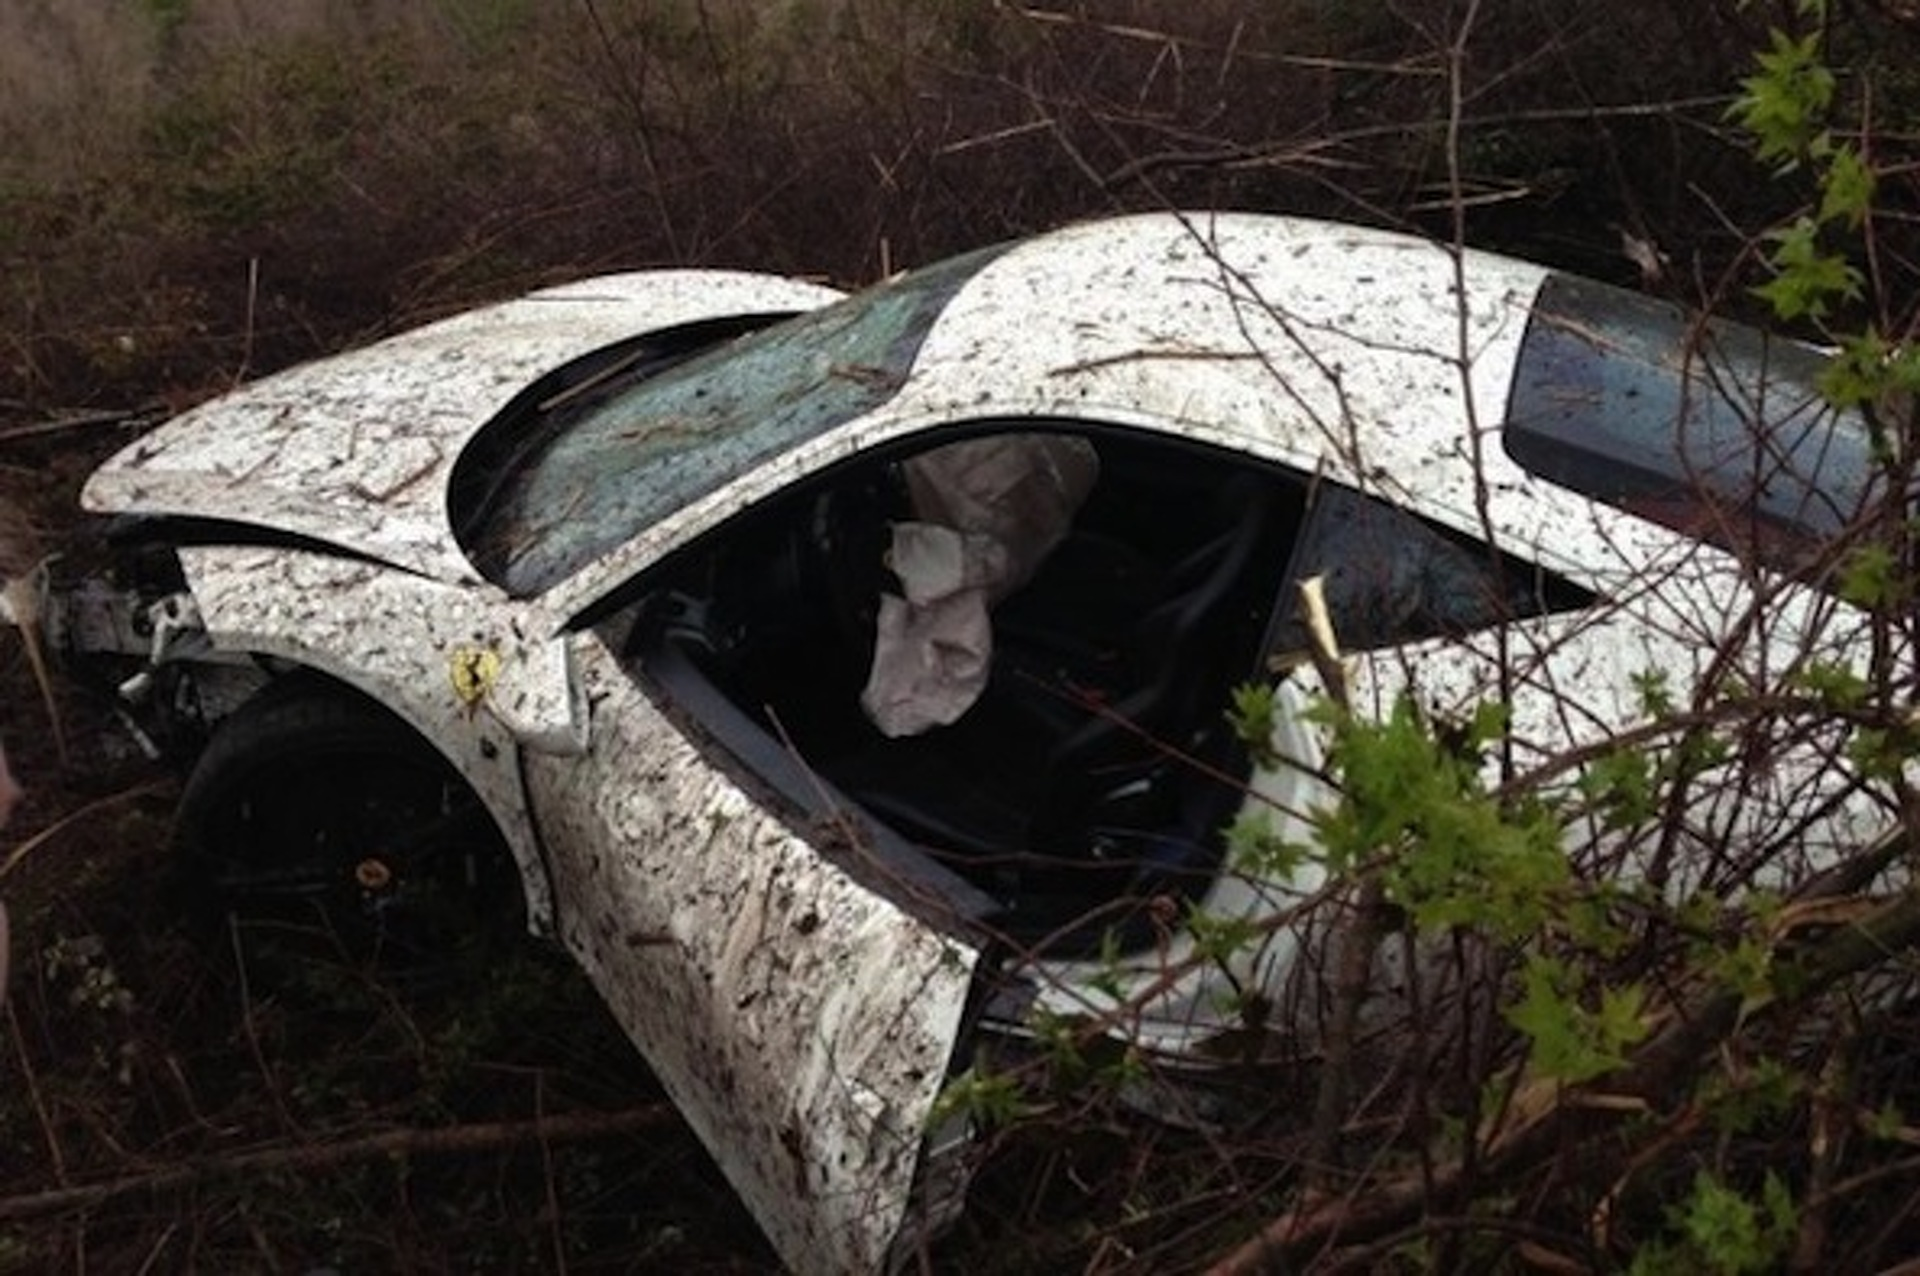 Underground Racing Ferrari 458 Wrecked at Amelia Island Airport